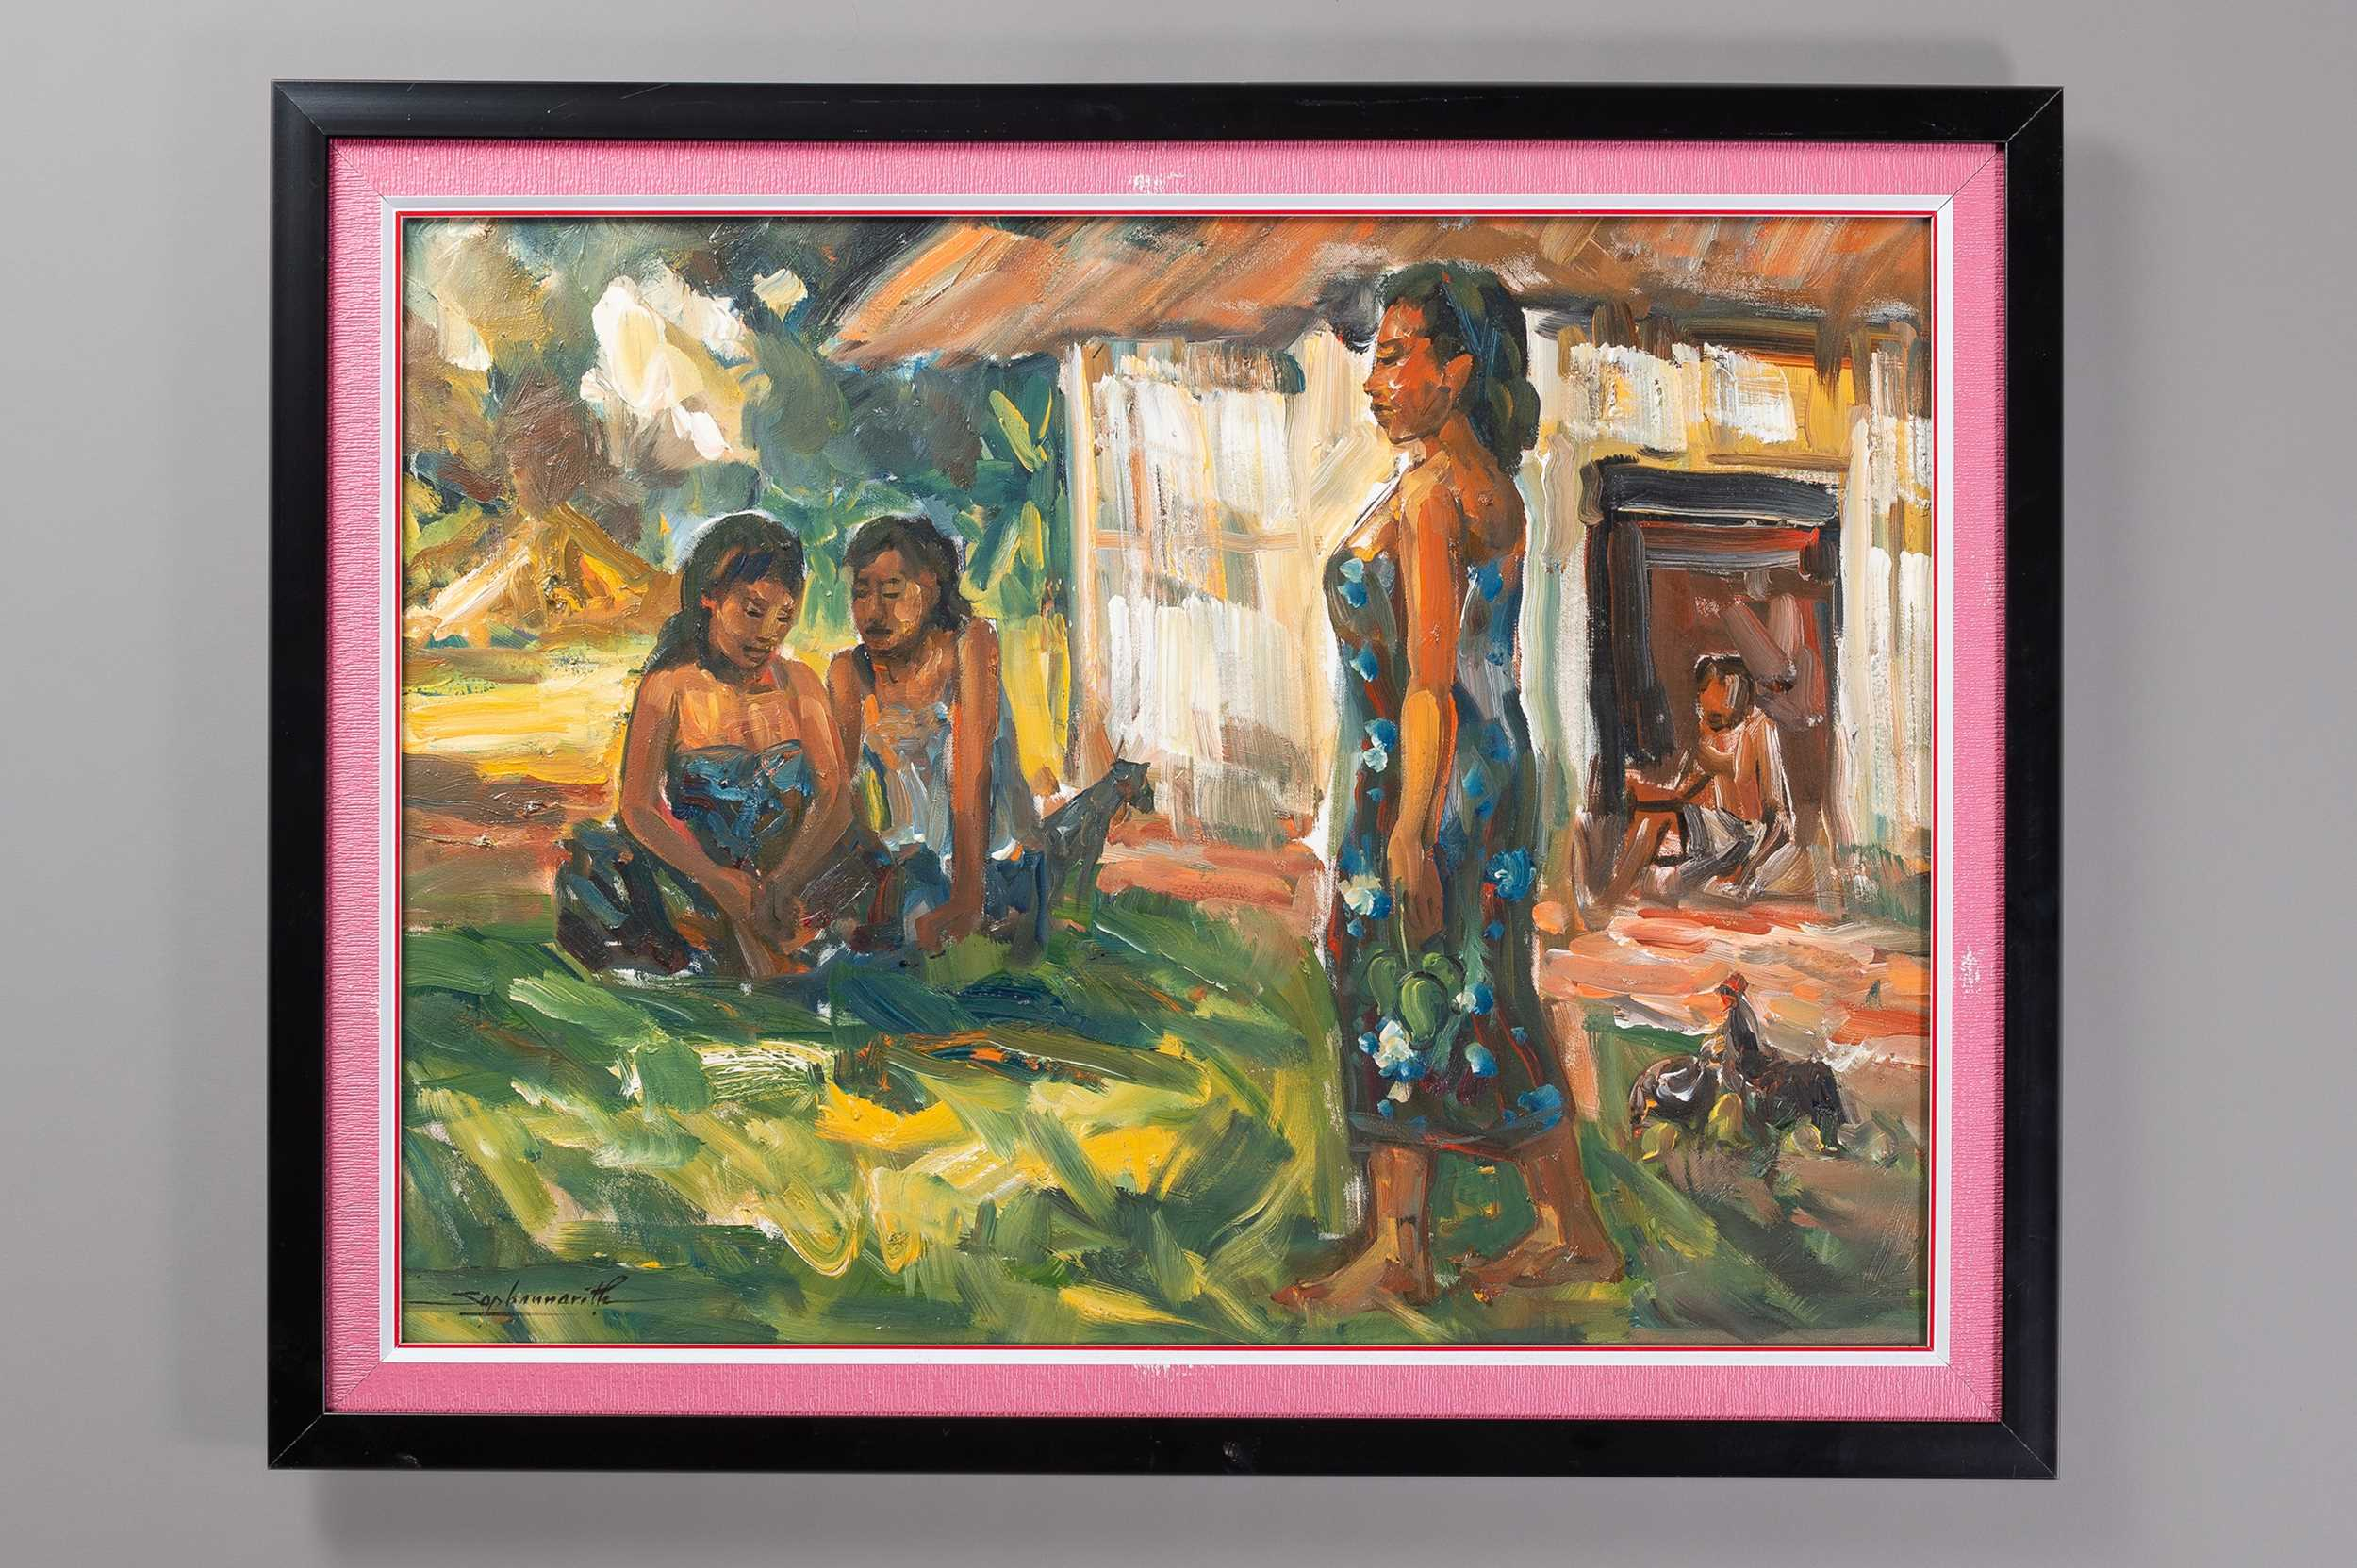 """´YOUNG LADIES IN THE COUNTRYSIDE"""" BY SOPHANNARITH (BORN 1960)"""